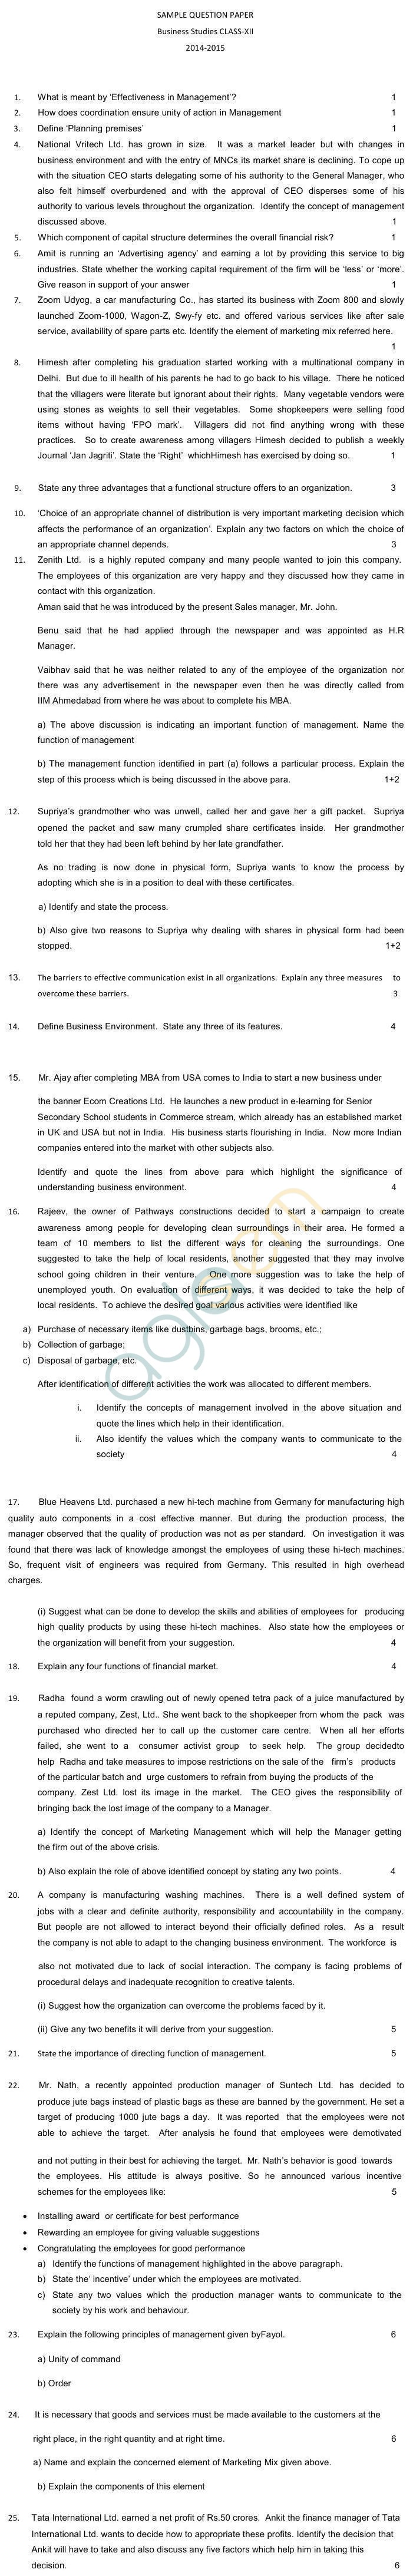 cbse sample papers for class business studies kashmir  cbse sample papers 2015 for class 12 business studies